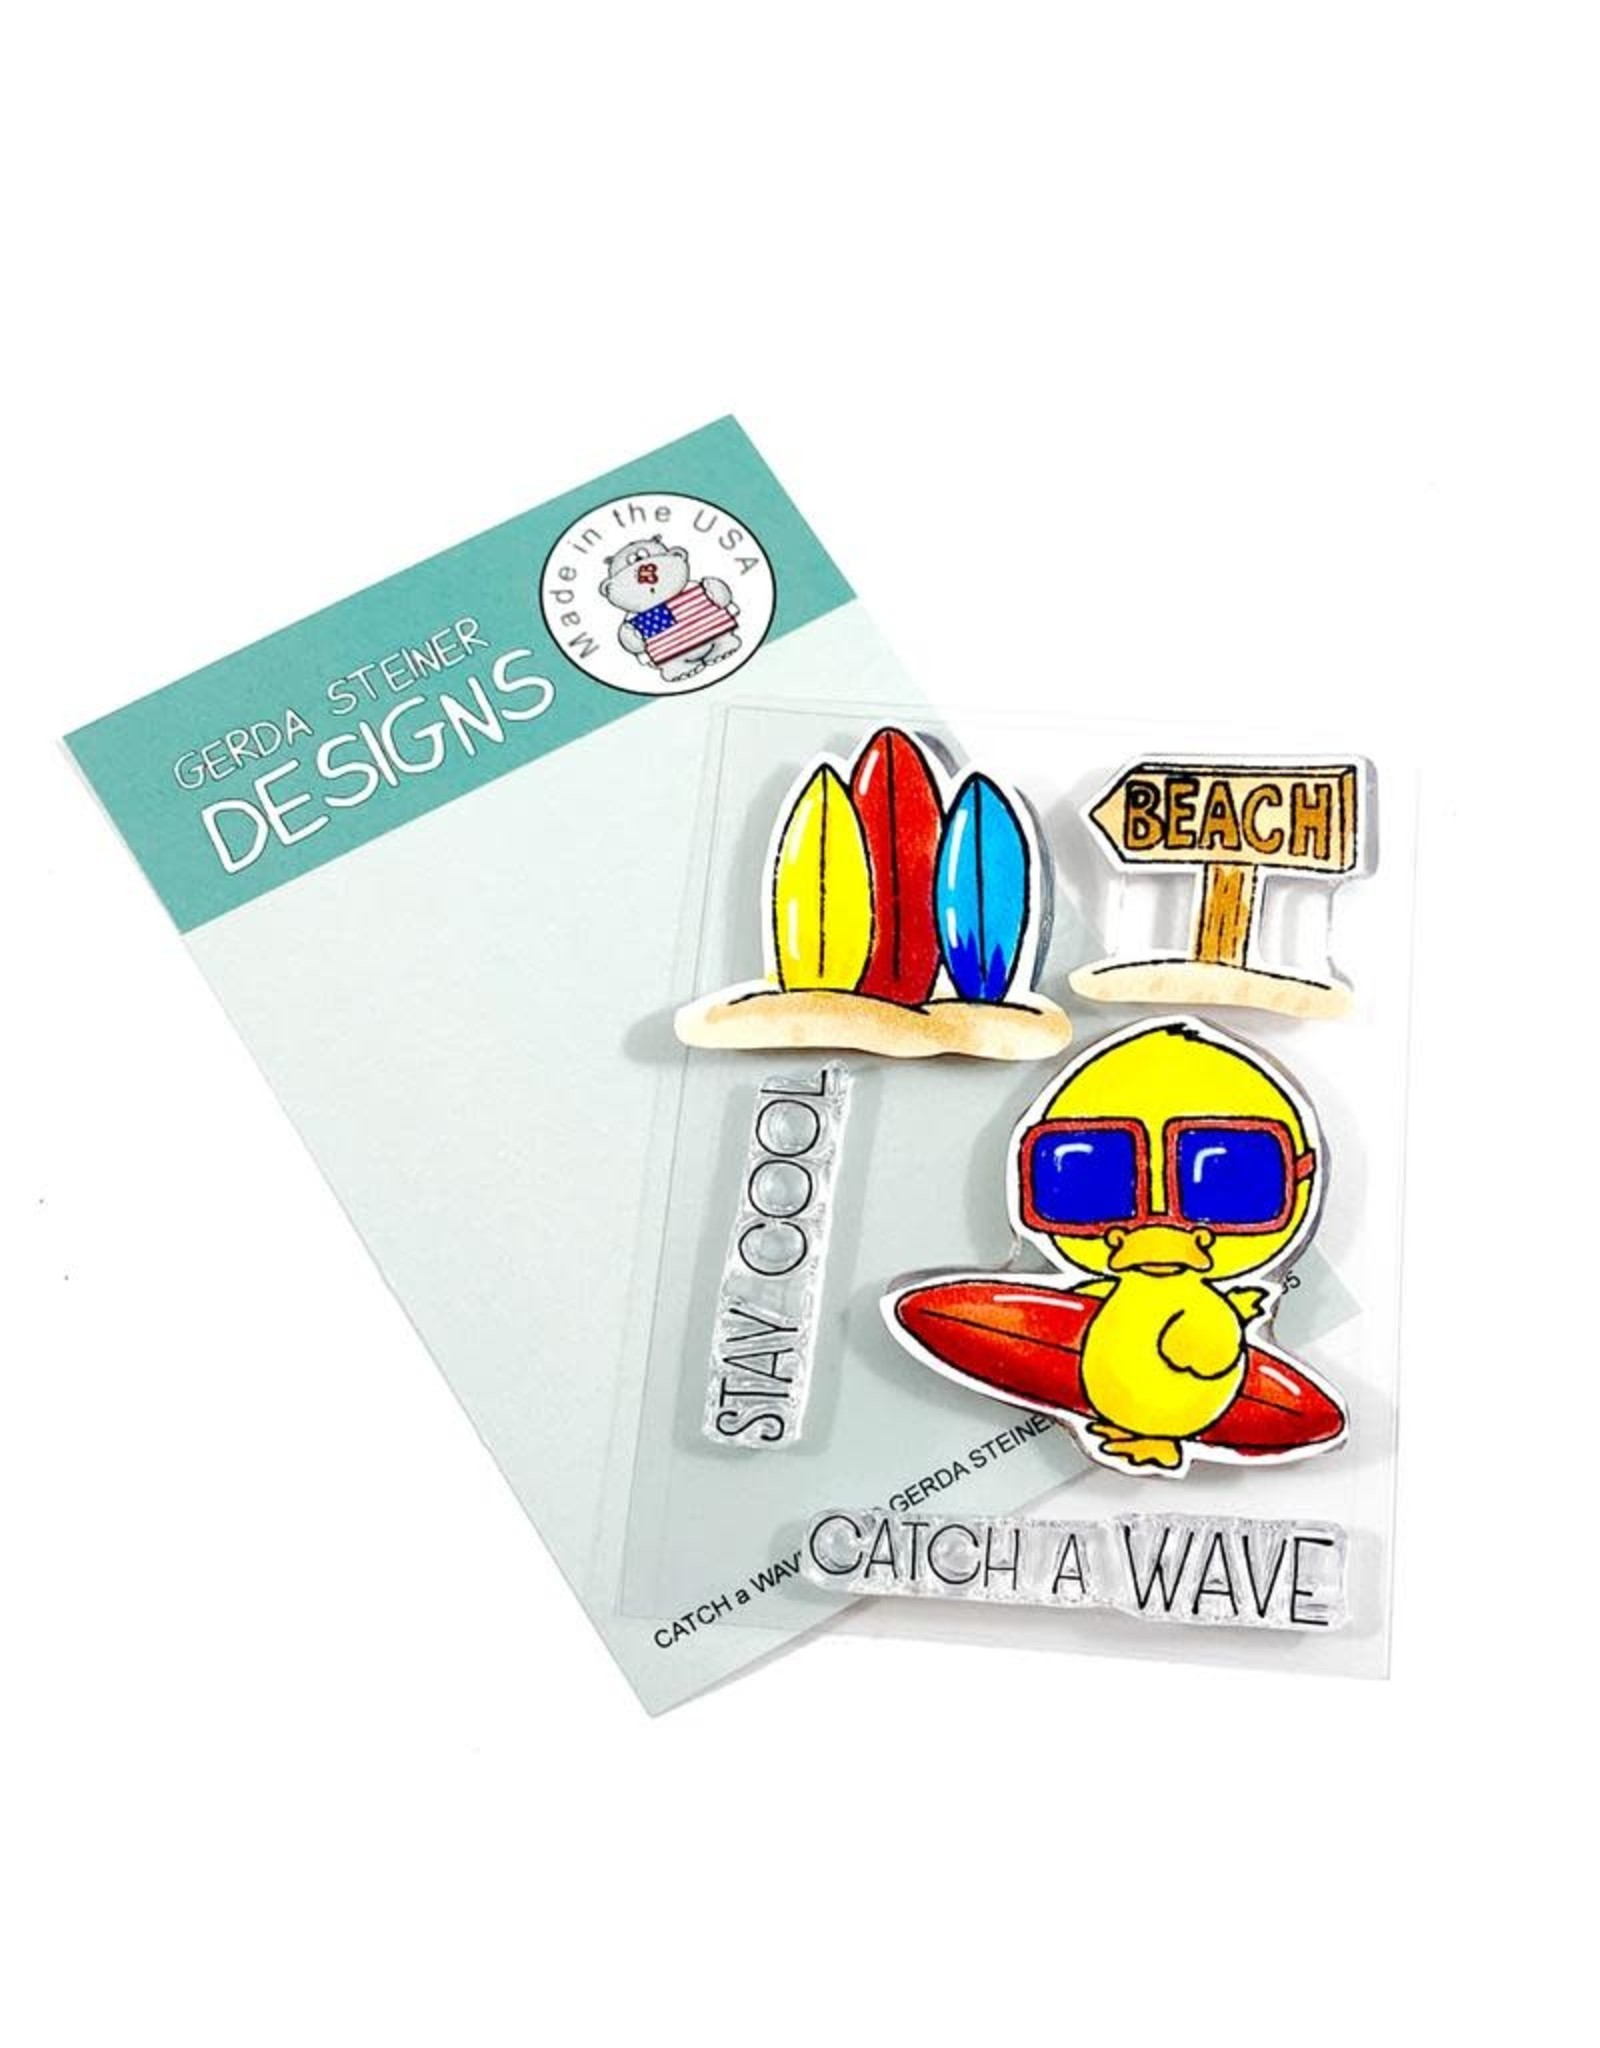 Gerda Steiner Designs Catch a Wave Clear Stamp Set